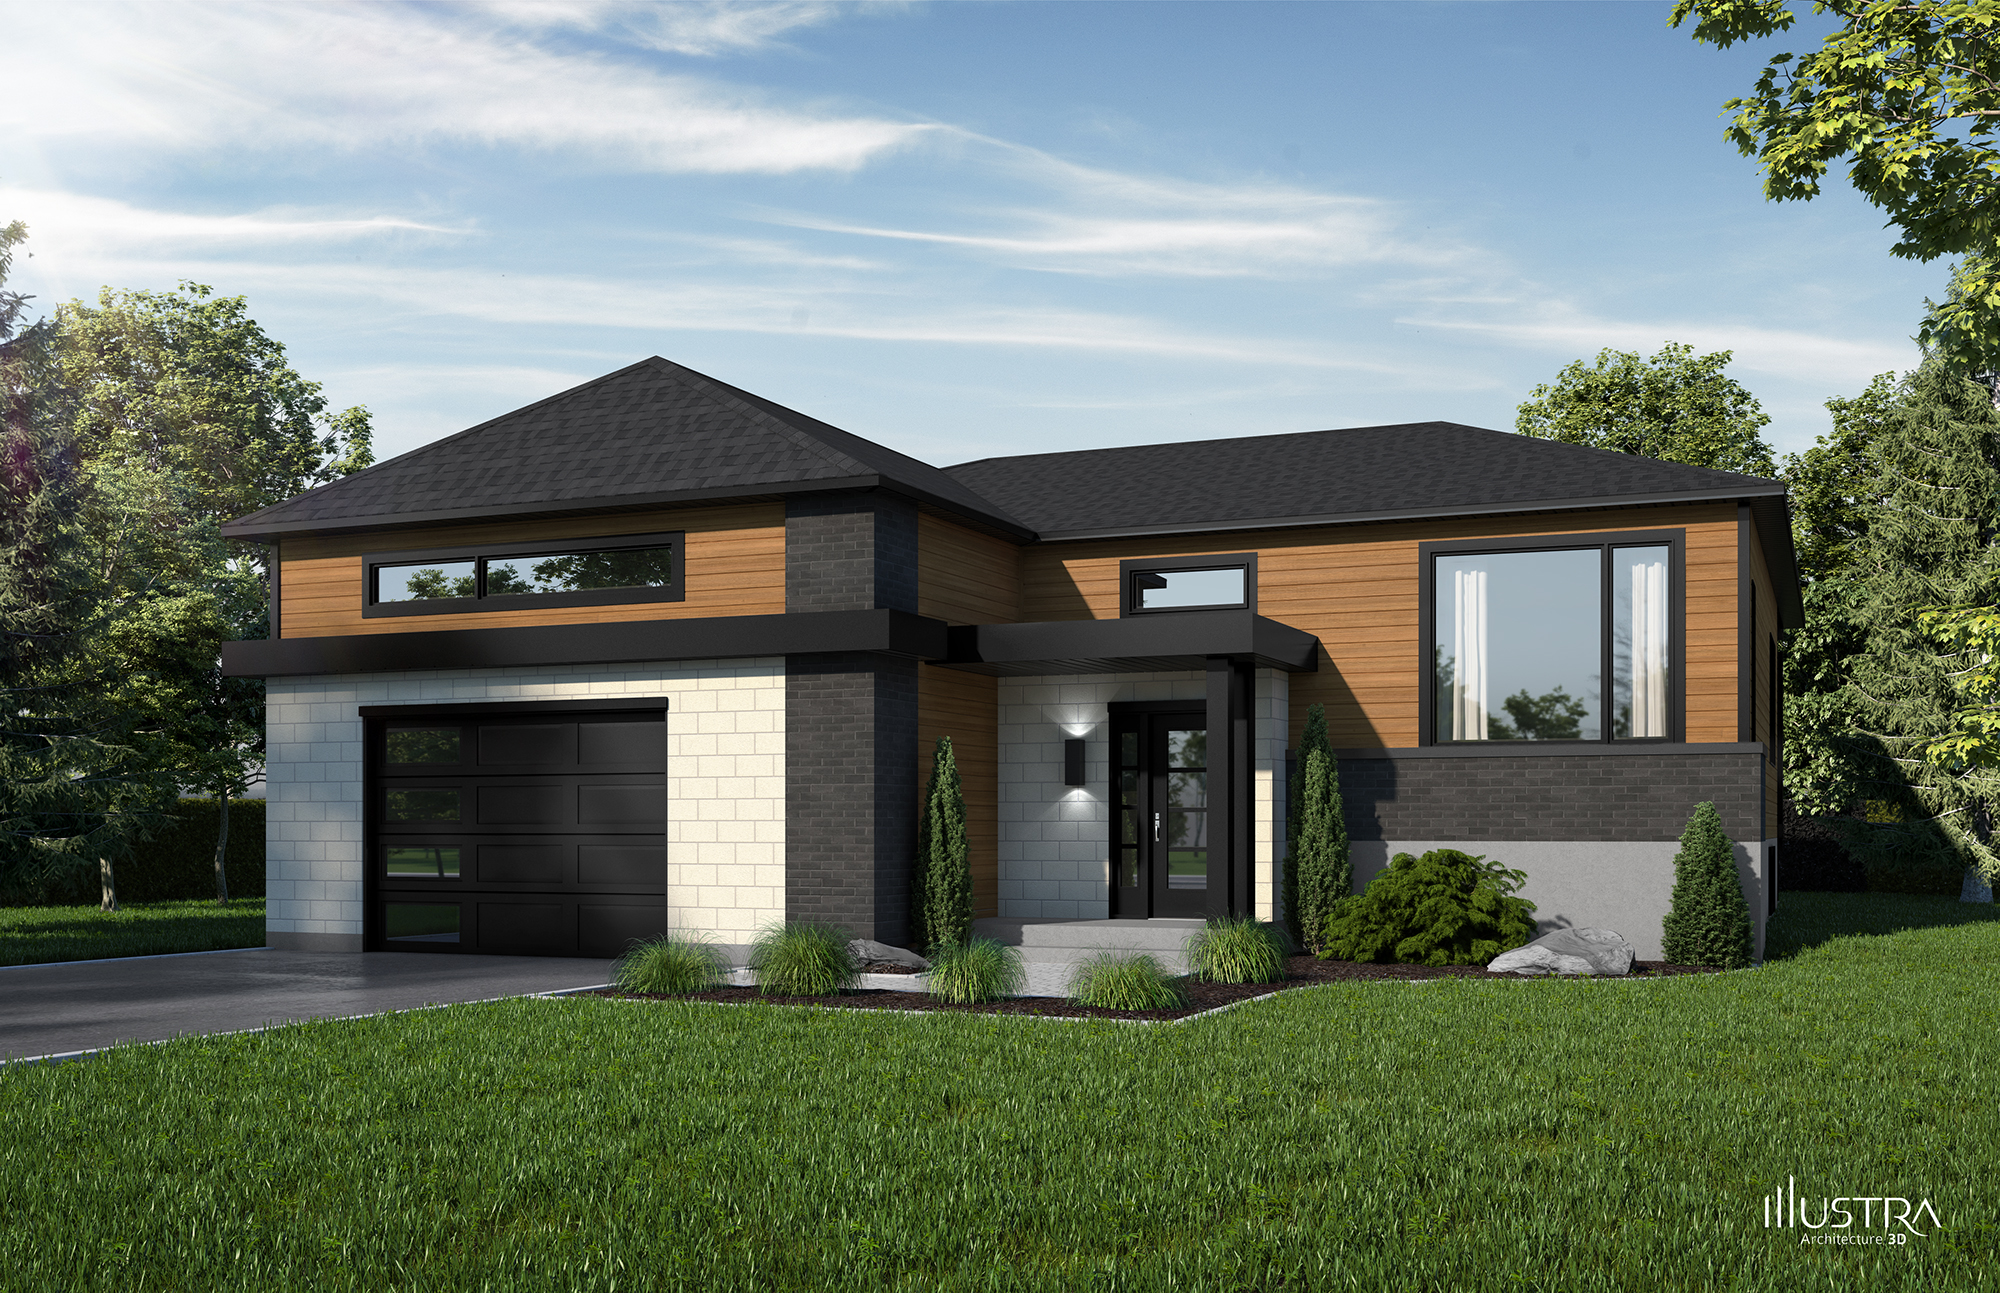 Trendy Modele Beauharnois With Exemple De Maison Neuve